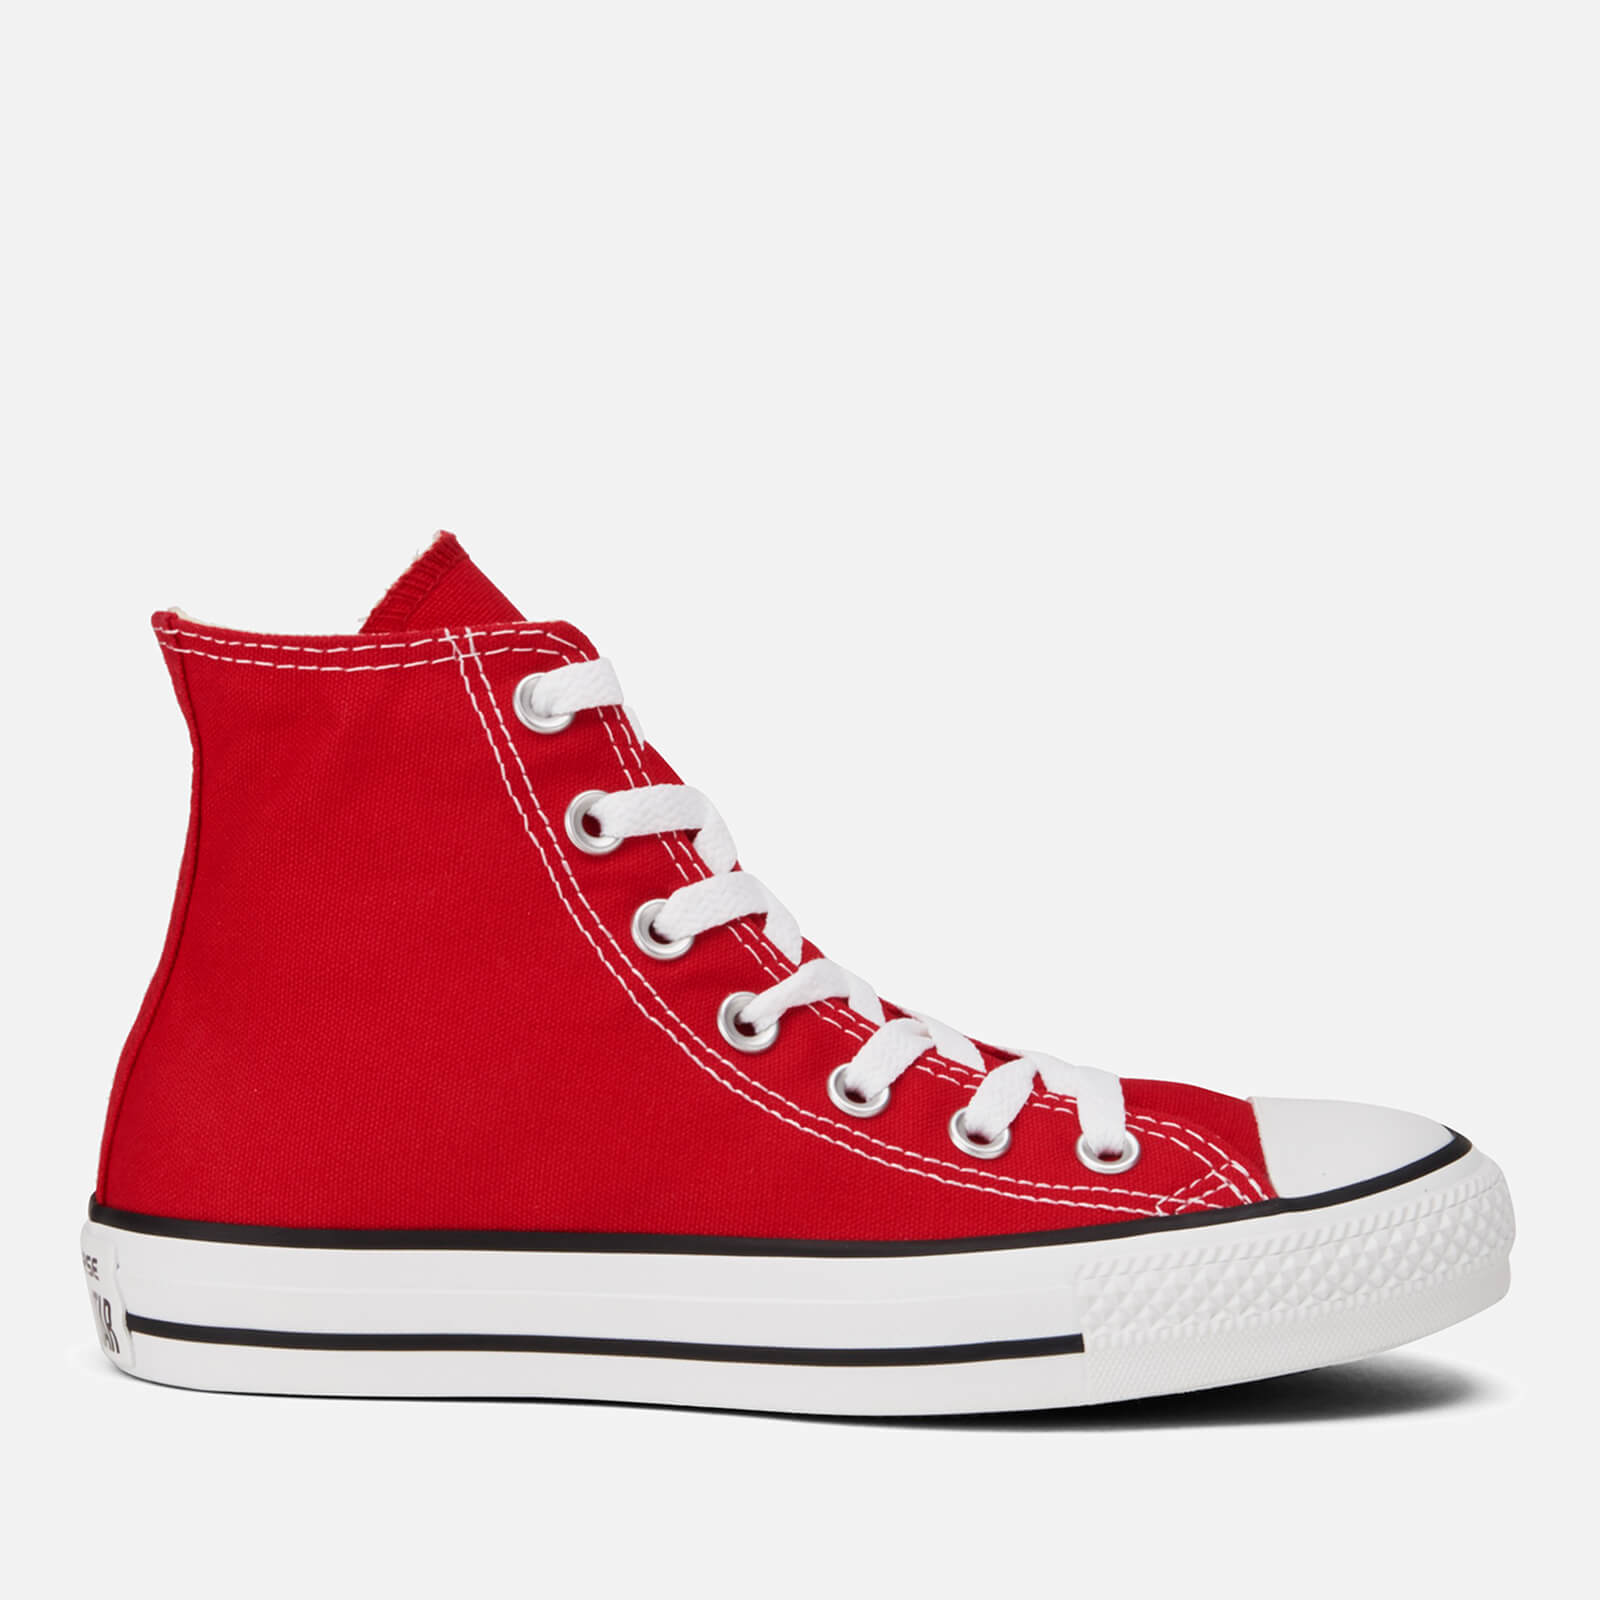 Converse All Star Canvas Hi-Top Trainers - Red - UK 8